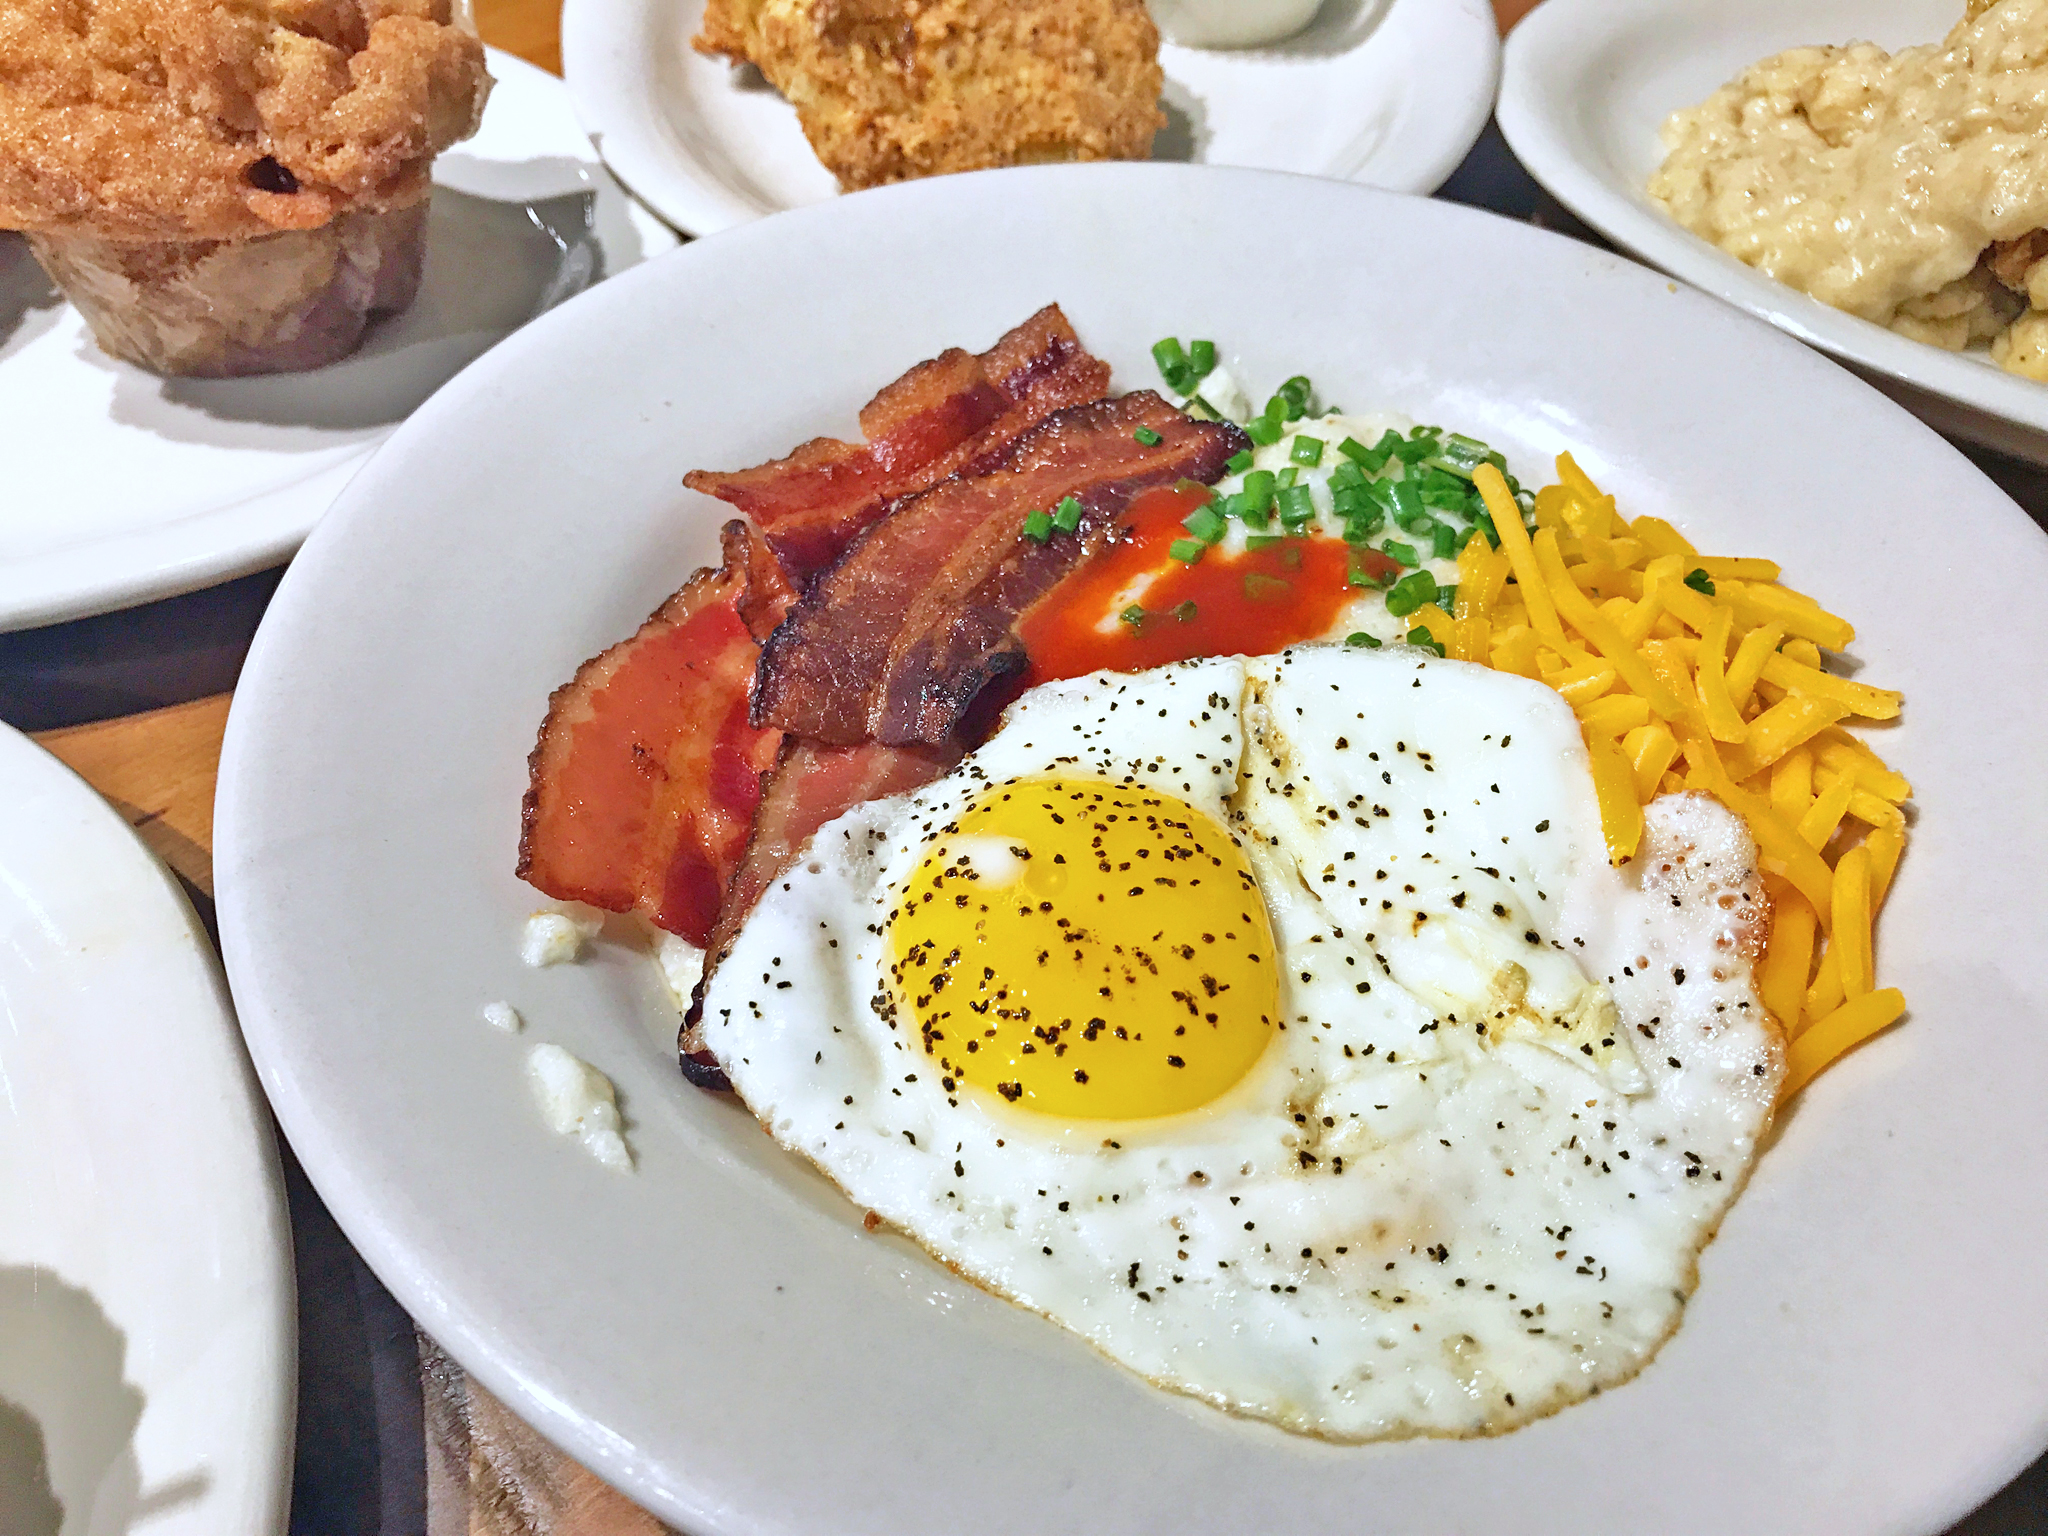 Bluegrass grits cut with cream cheese and butter, topped with pecanwood smoked bacon, cheddar cheese, chives, a sunny side up egg, and a splash of hot sauce.